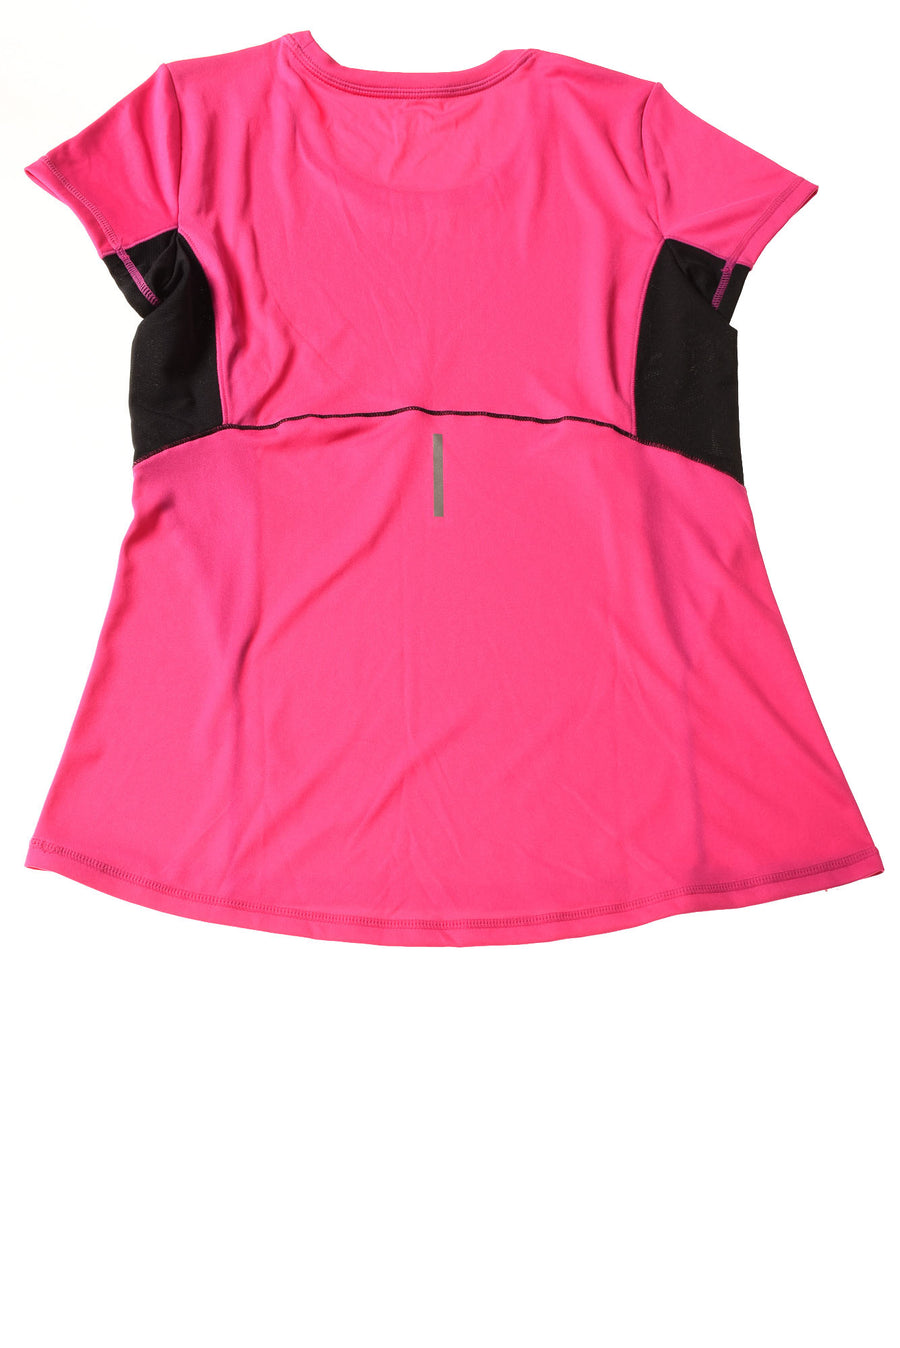 NEW Tek Gear Women's Top Medium Pink & Black